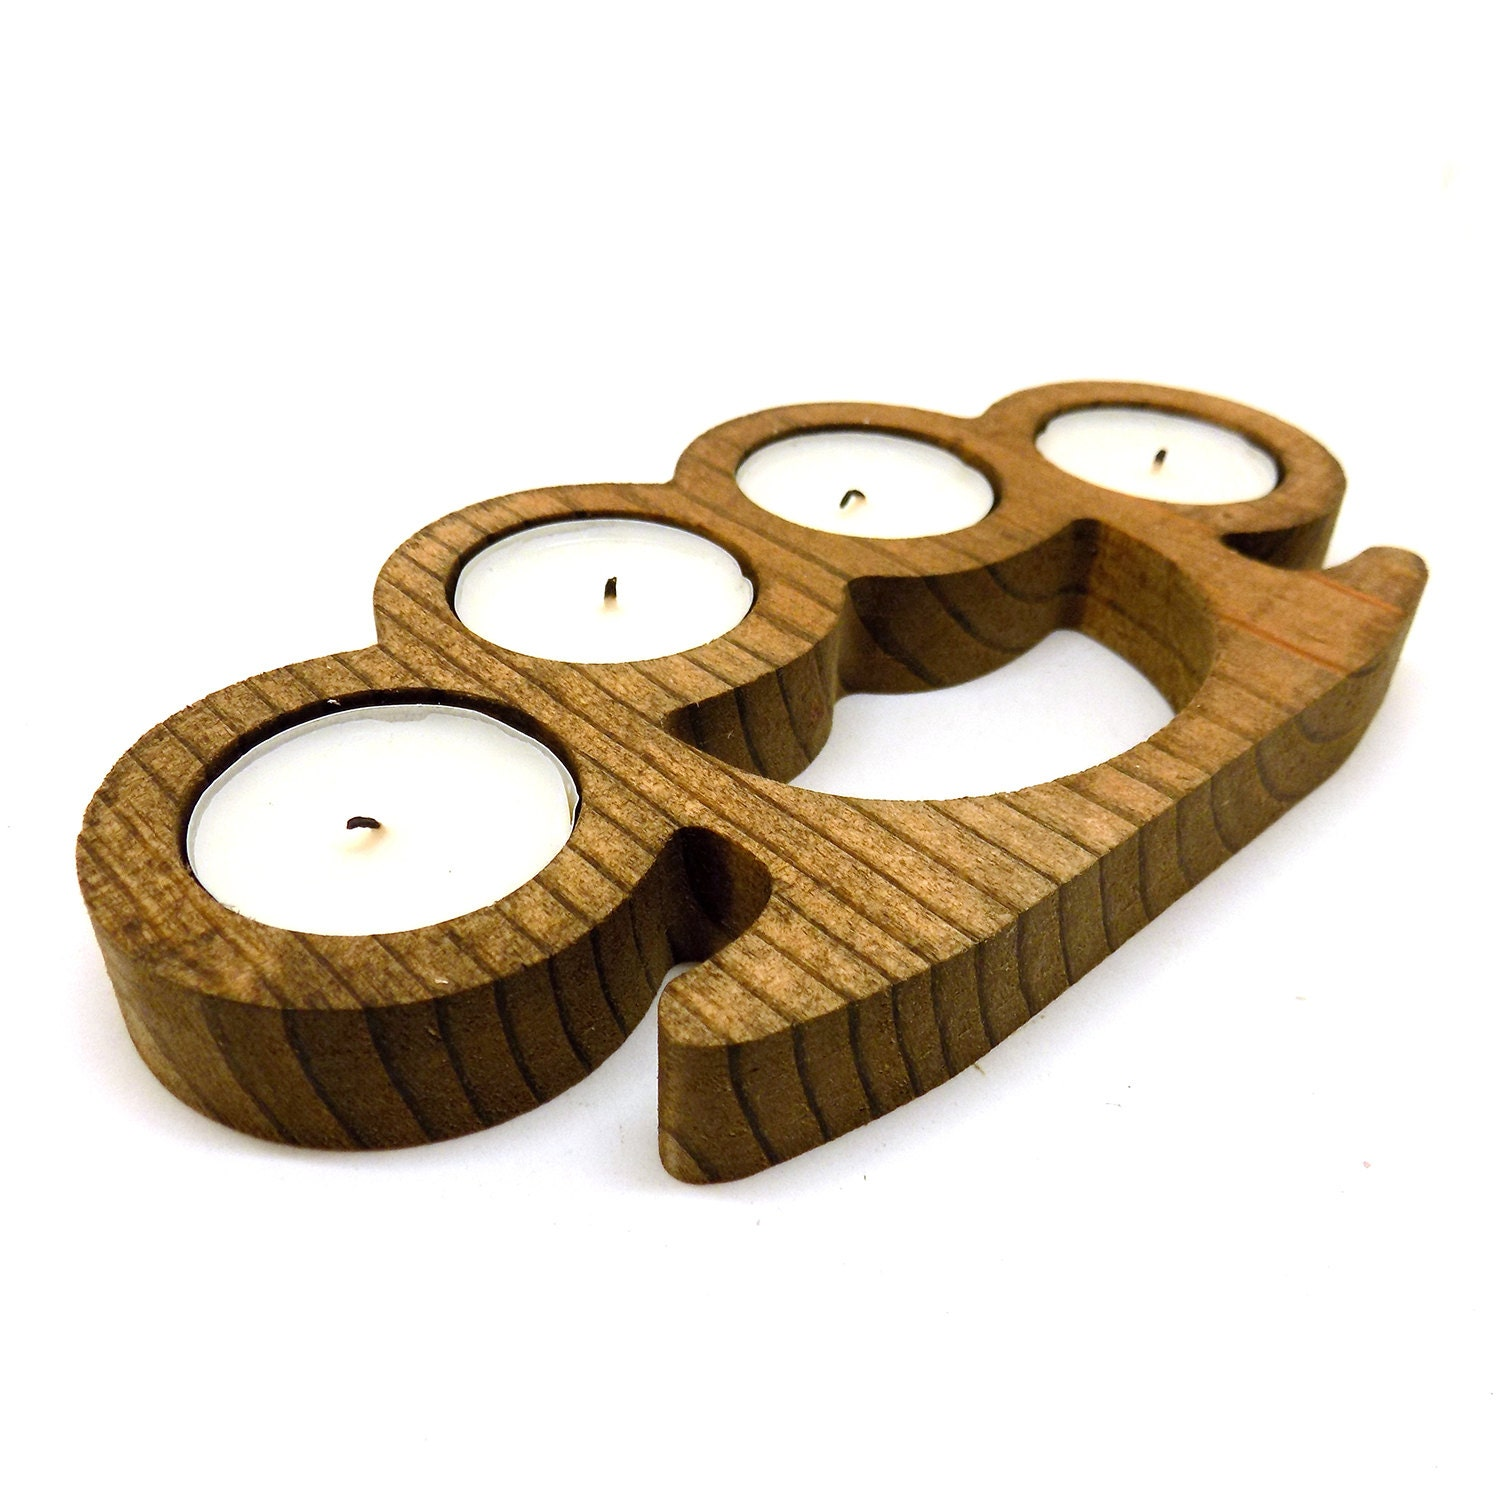 Wood Knuckles Candle Holder Brass Knuckle Vintage Weapon